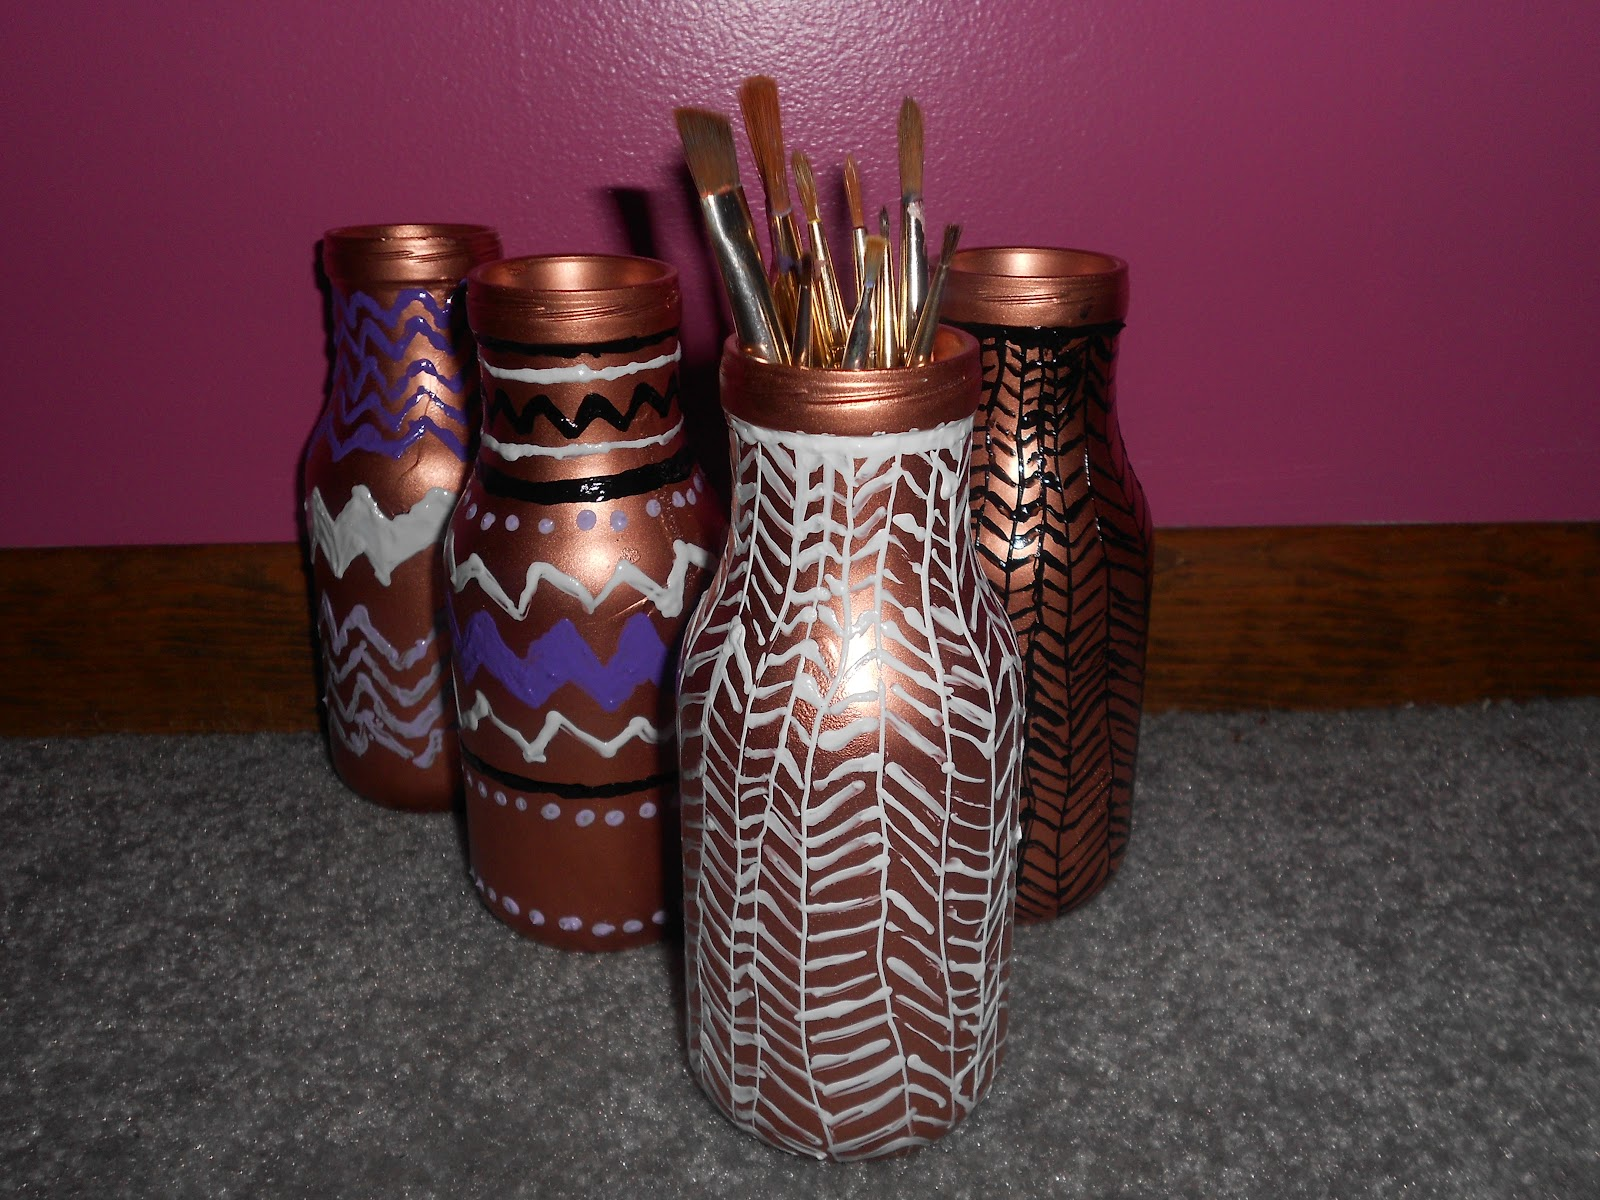 Diy glass bottle crafts ideas for Diy crafts with glass jars and bottles